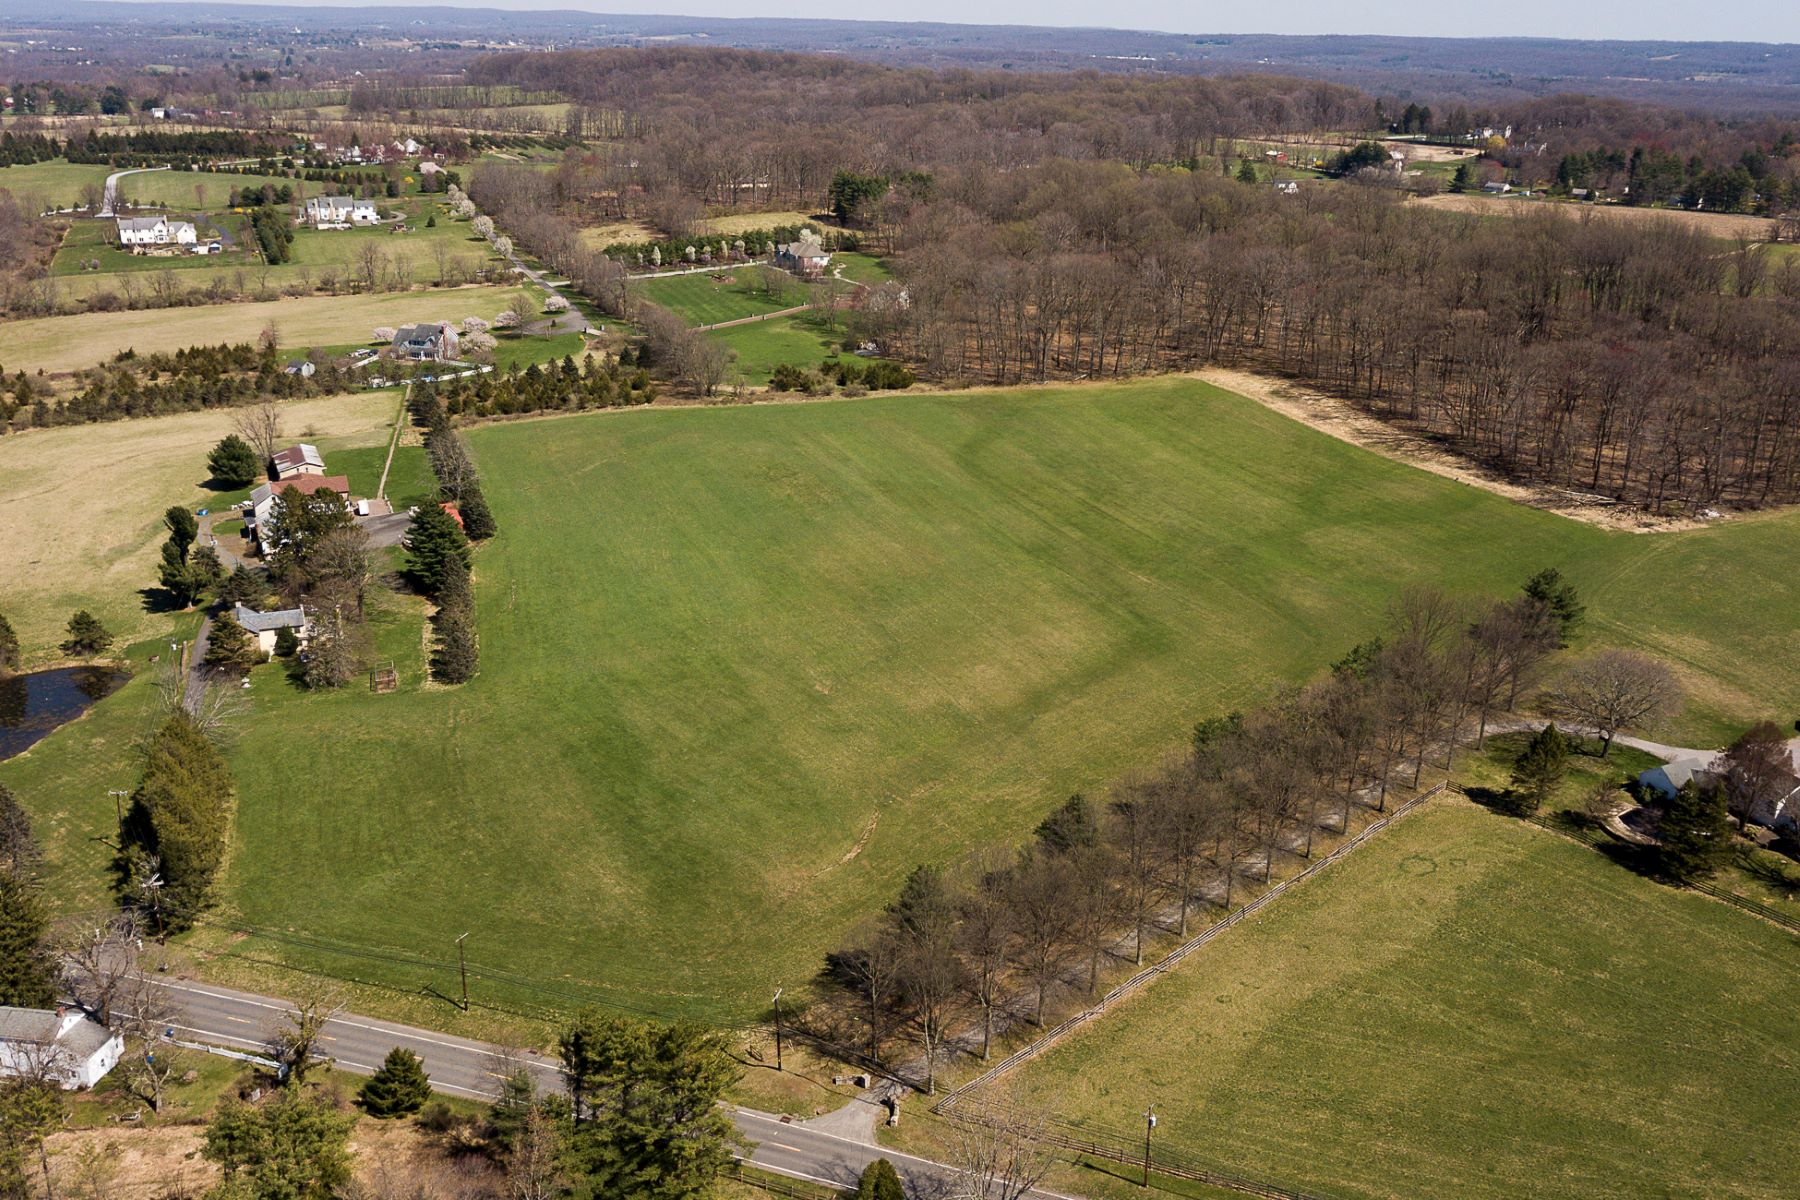 Land for Sale at 18+ Acre Parcel - Build Your Dream Home 807 Sergeantsville Road, Stockton, New Jersey 08559 United States